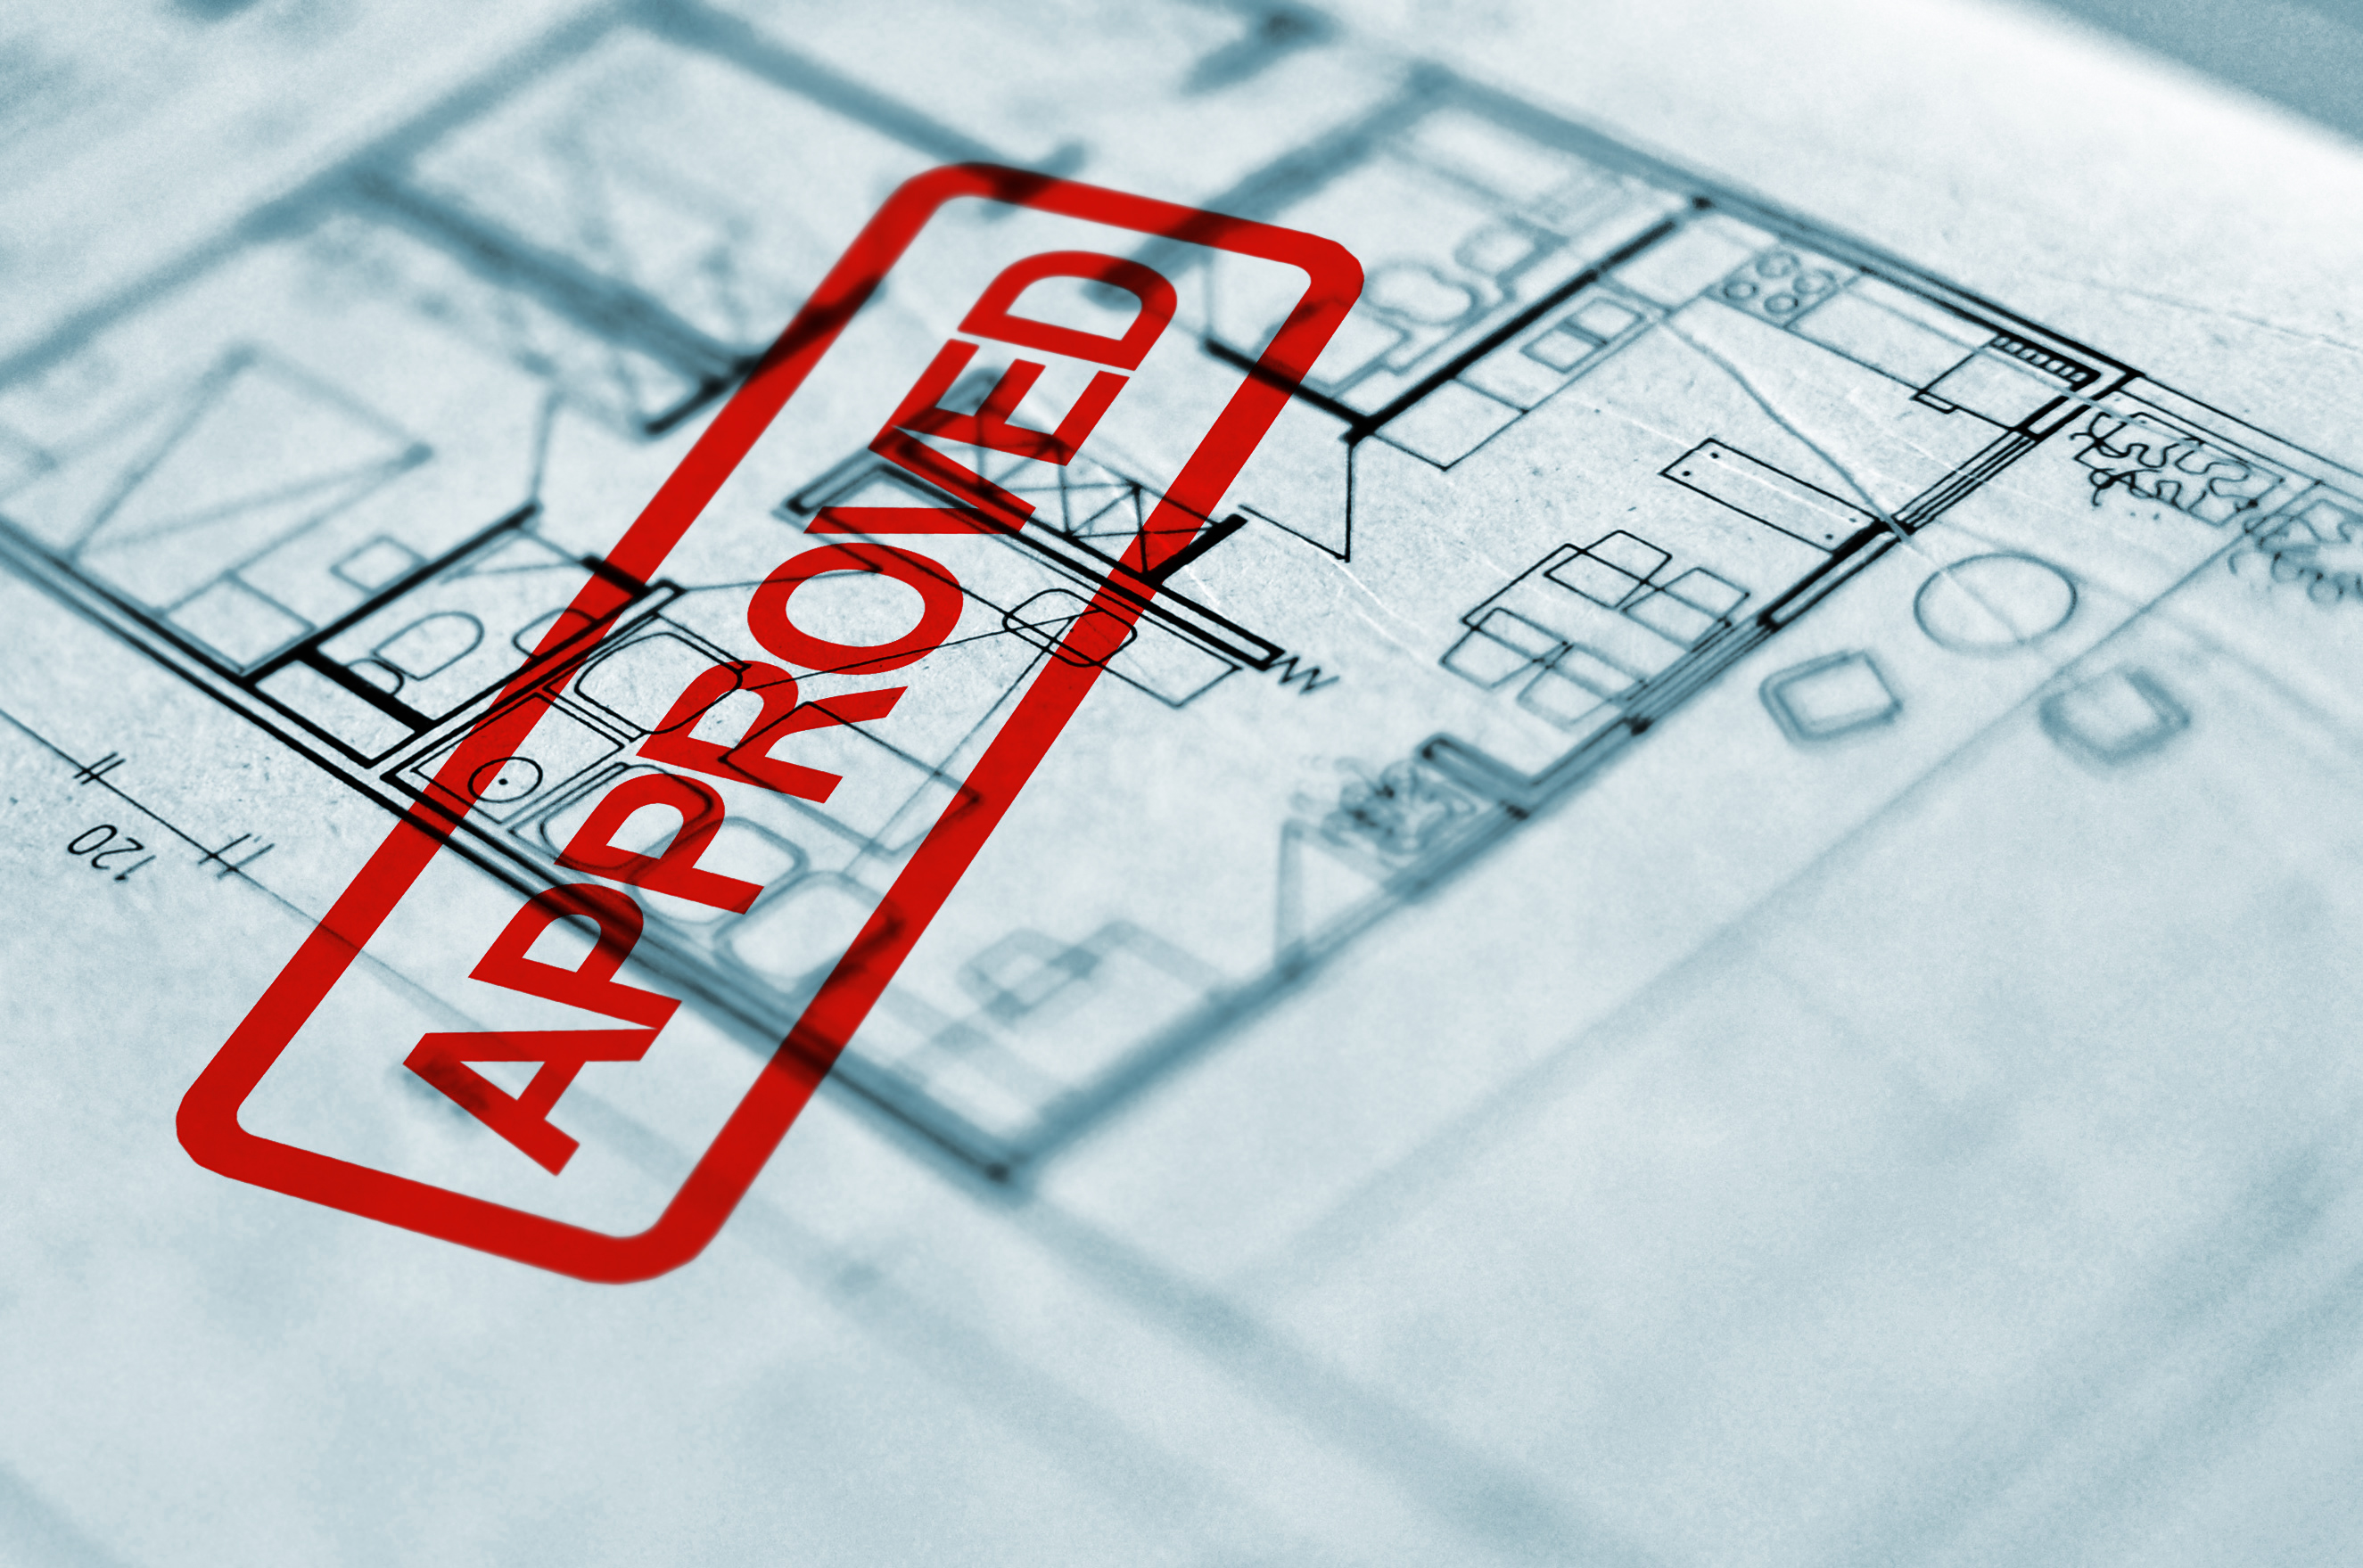 Property Development: Purchasing a property with an existing DA, developers beware.